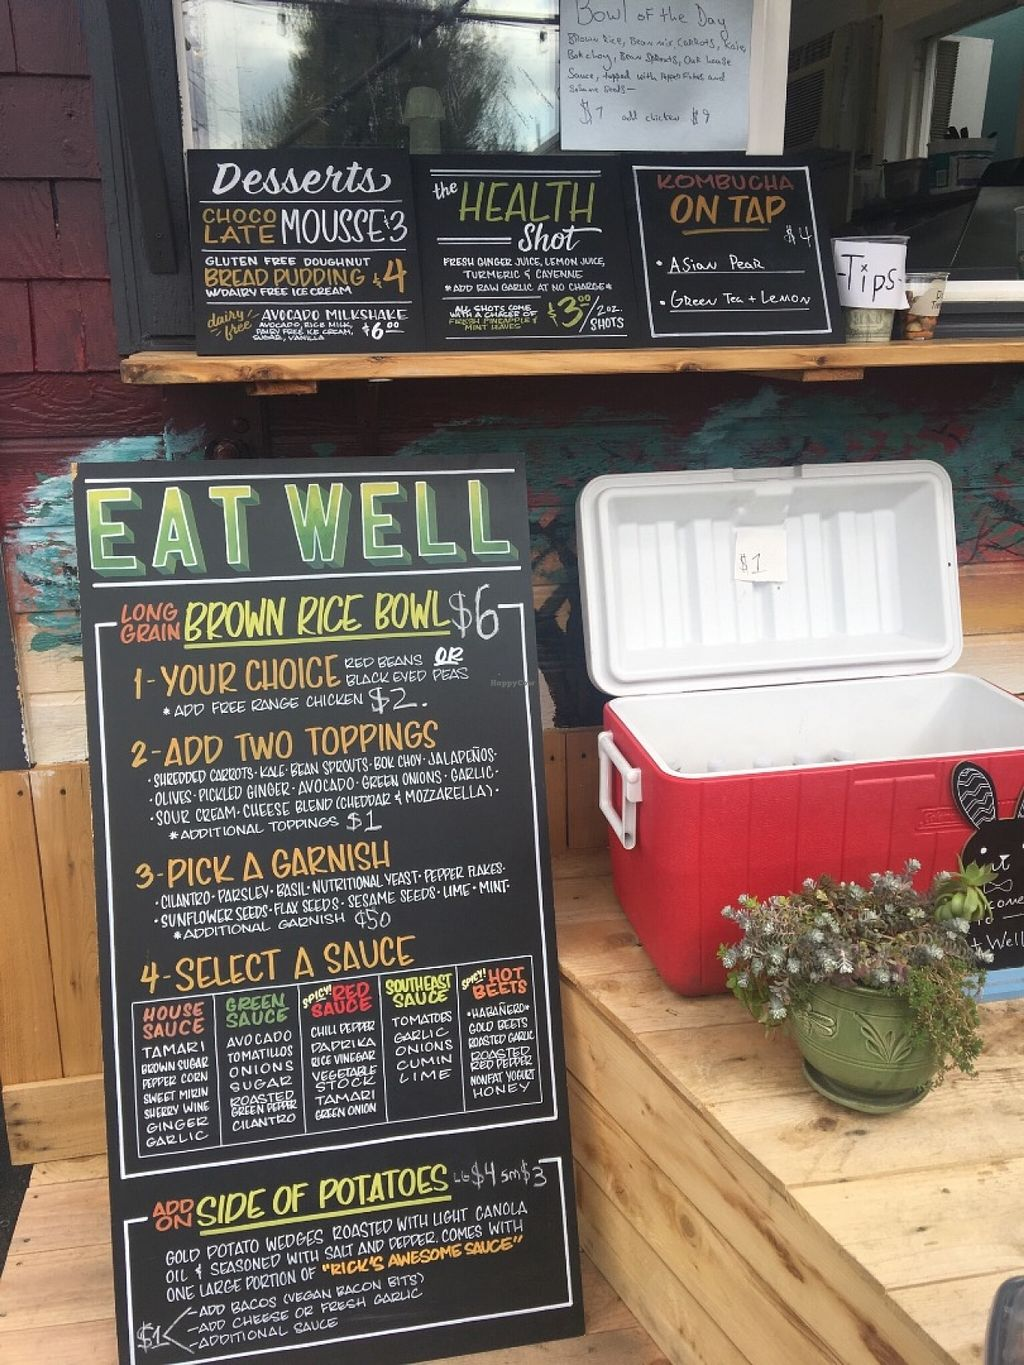 """Photo of CLOSED: Eat Well - Food Truck  by <a href=""""/members/profile/Arthousebill"""">Arthousebill</a> <br/>Menu <br/> June 26, 2016  - <a href='/contact/abuse/image/75660/156308'>Report</a>"""